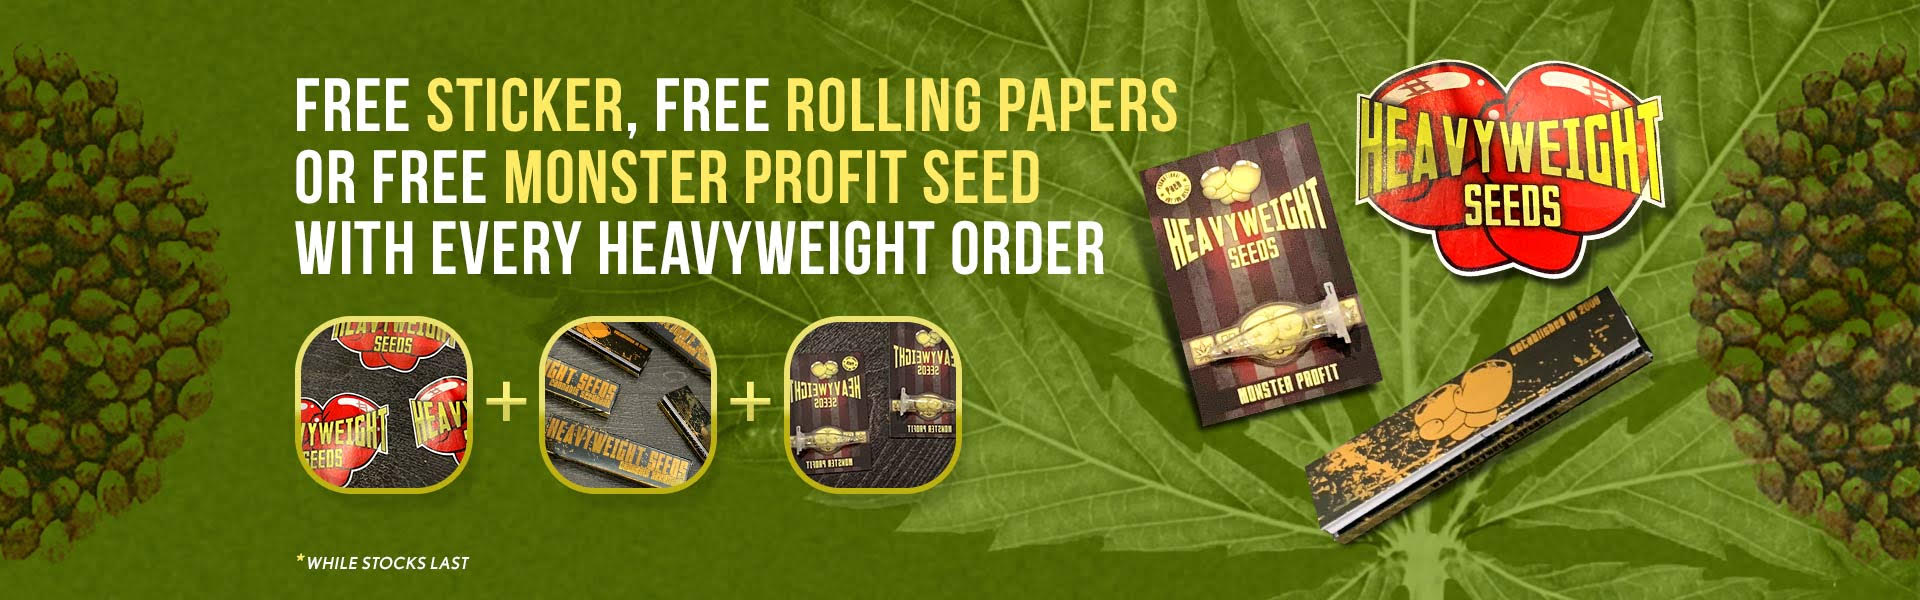 Free set of stickers, Free hat or free rolling papers with every order of paradise seeds